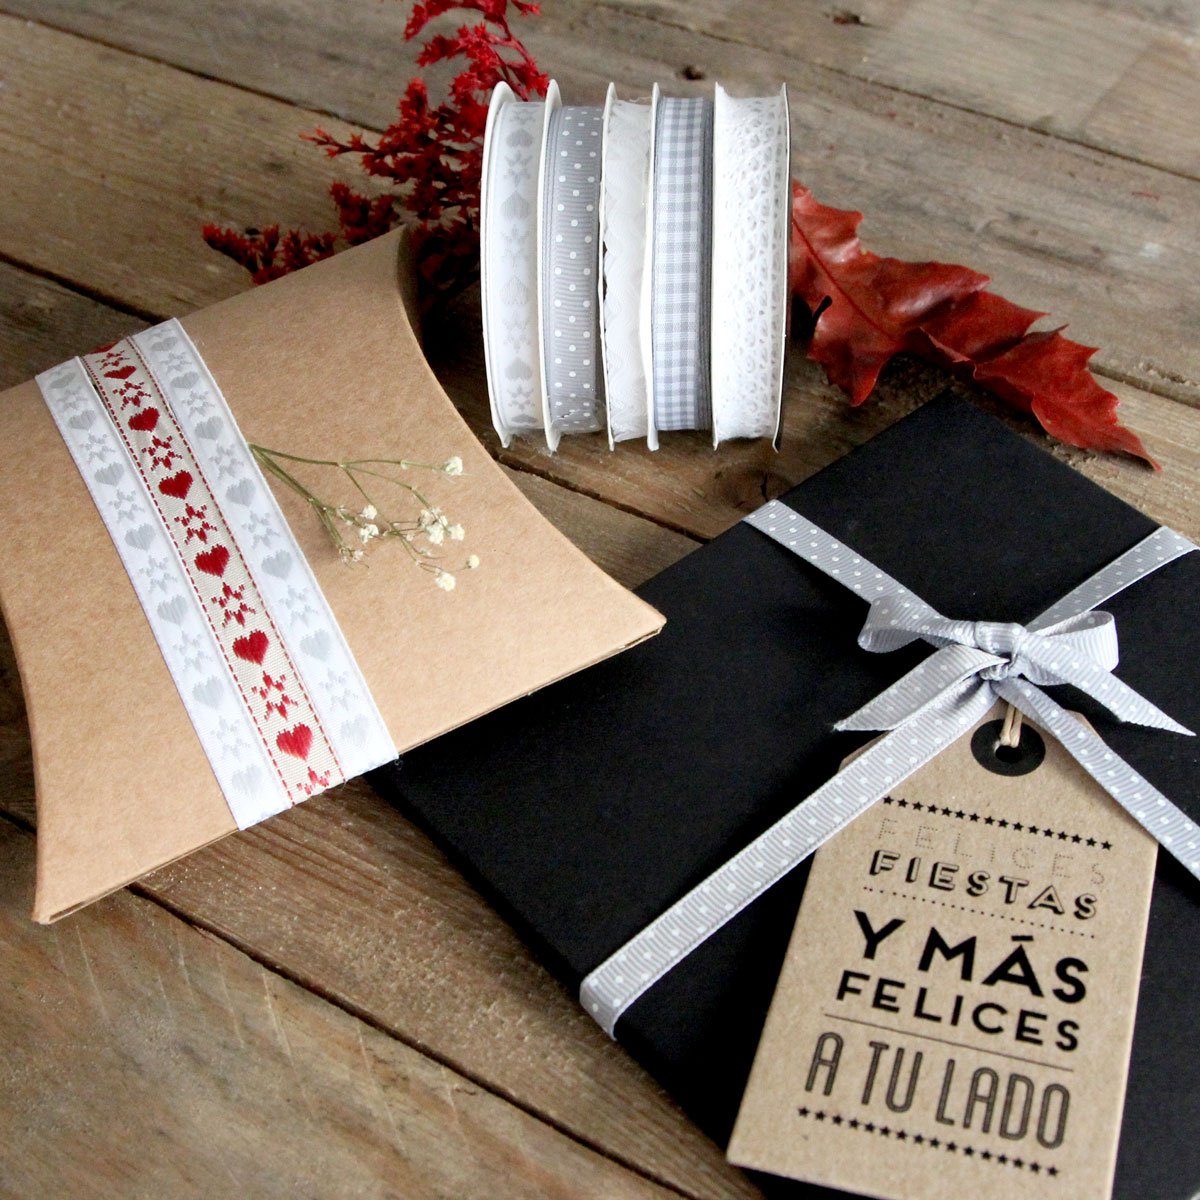 Mr_wonderful_shop_decoracion_navidad_2014_0106